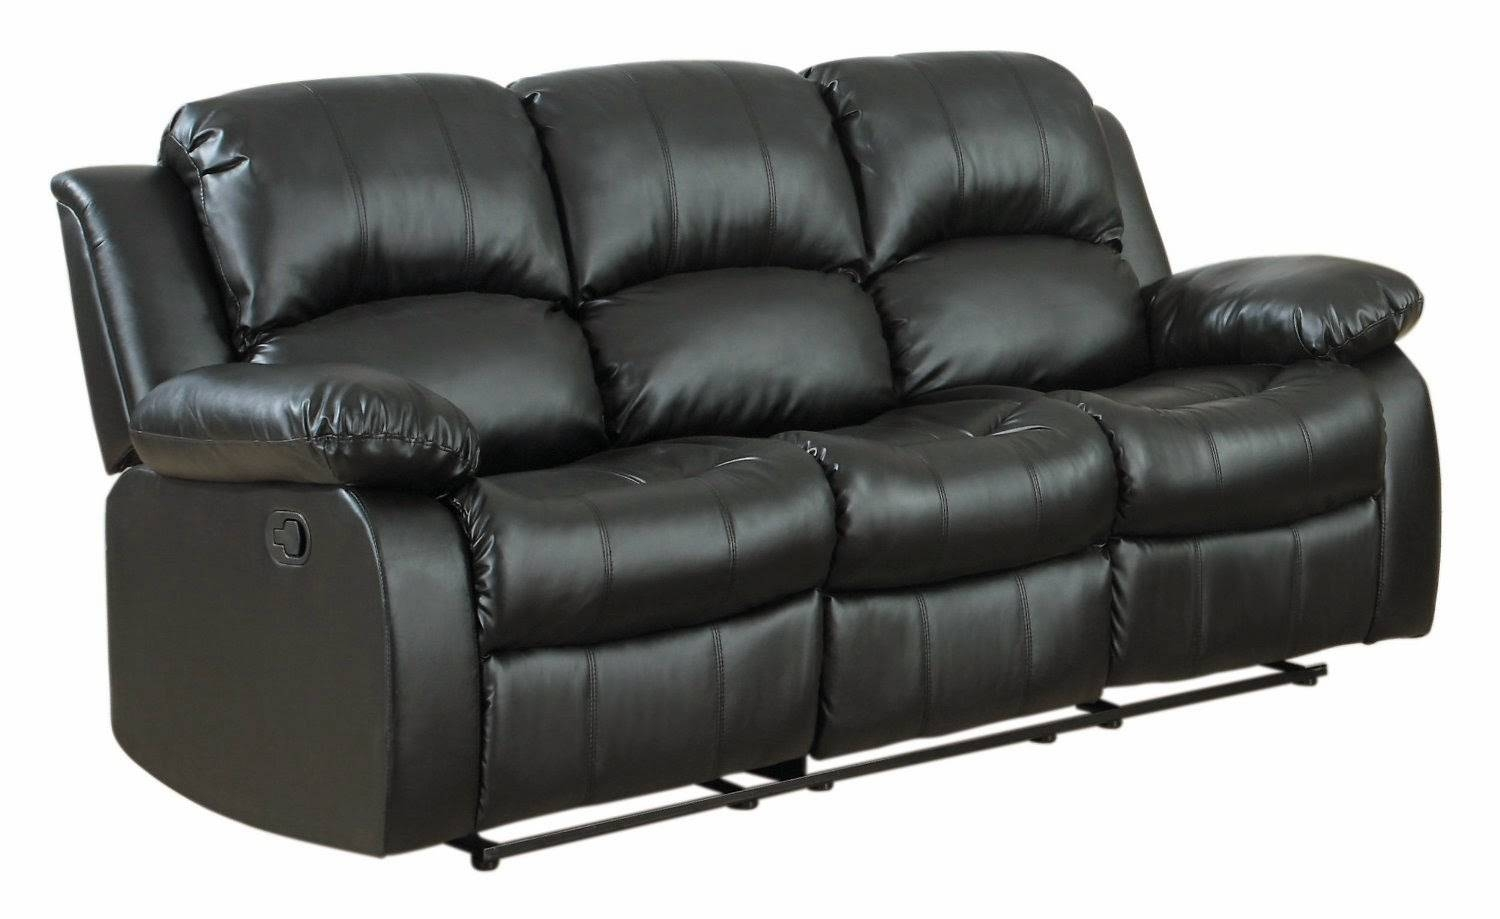 Reclining Sofas For Sale: Berkline Leather Reclining Sofa Costco inside Berkline Sofas (Image 13 of 15)